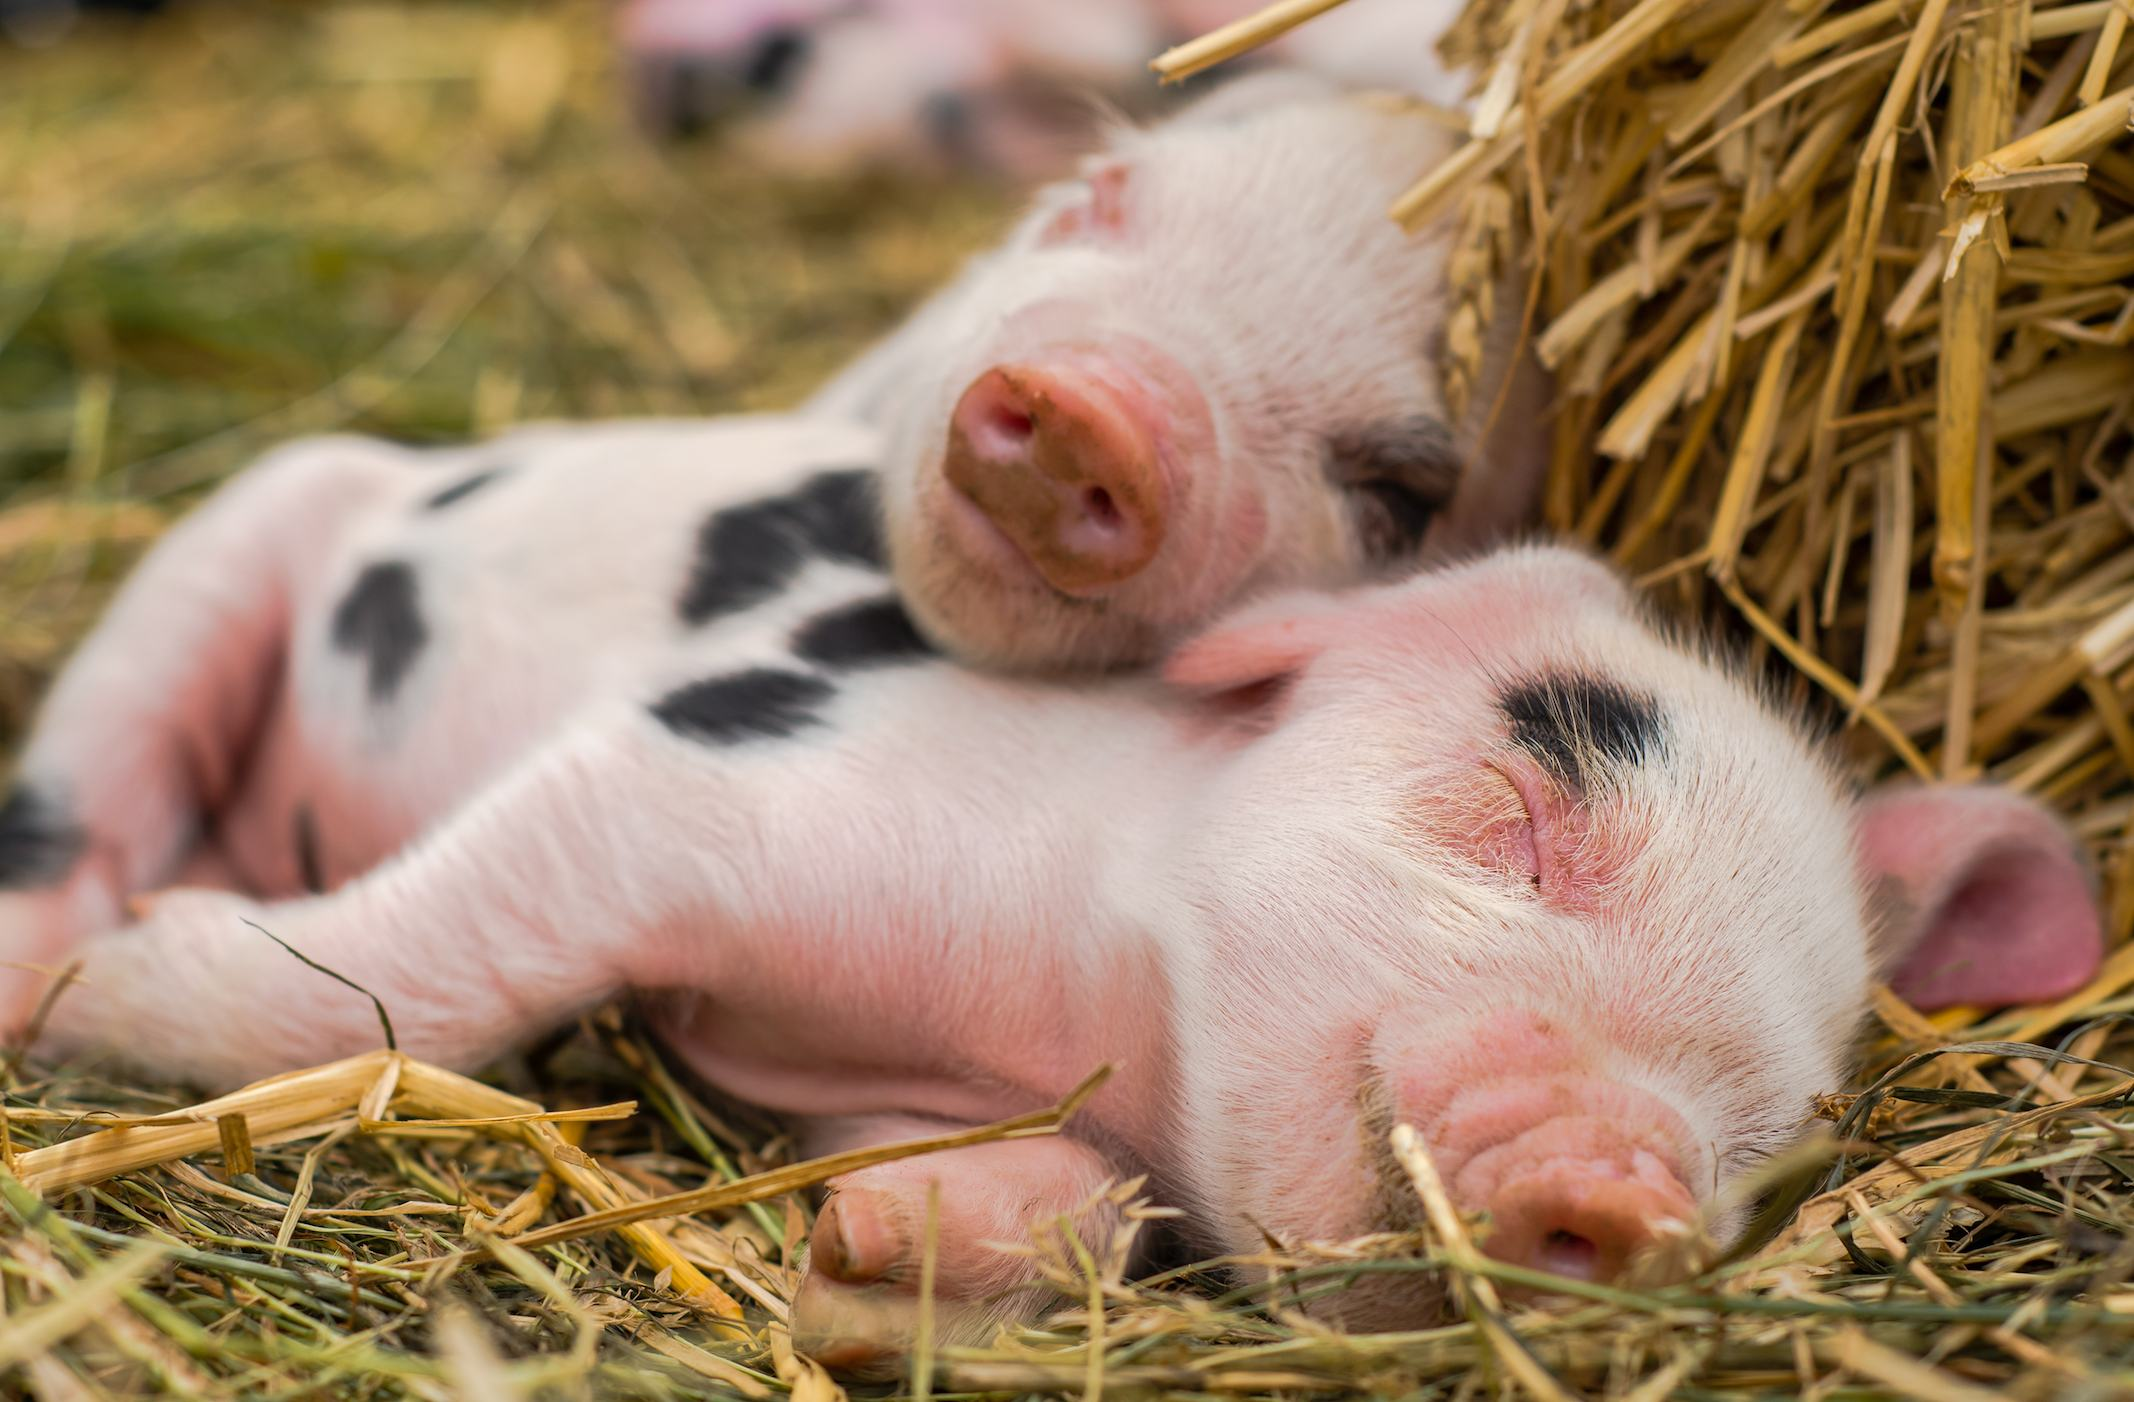 Piglets snuggling in straw